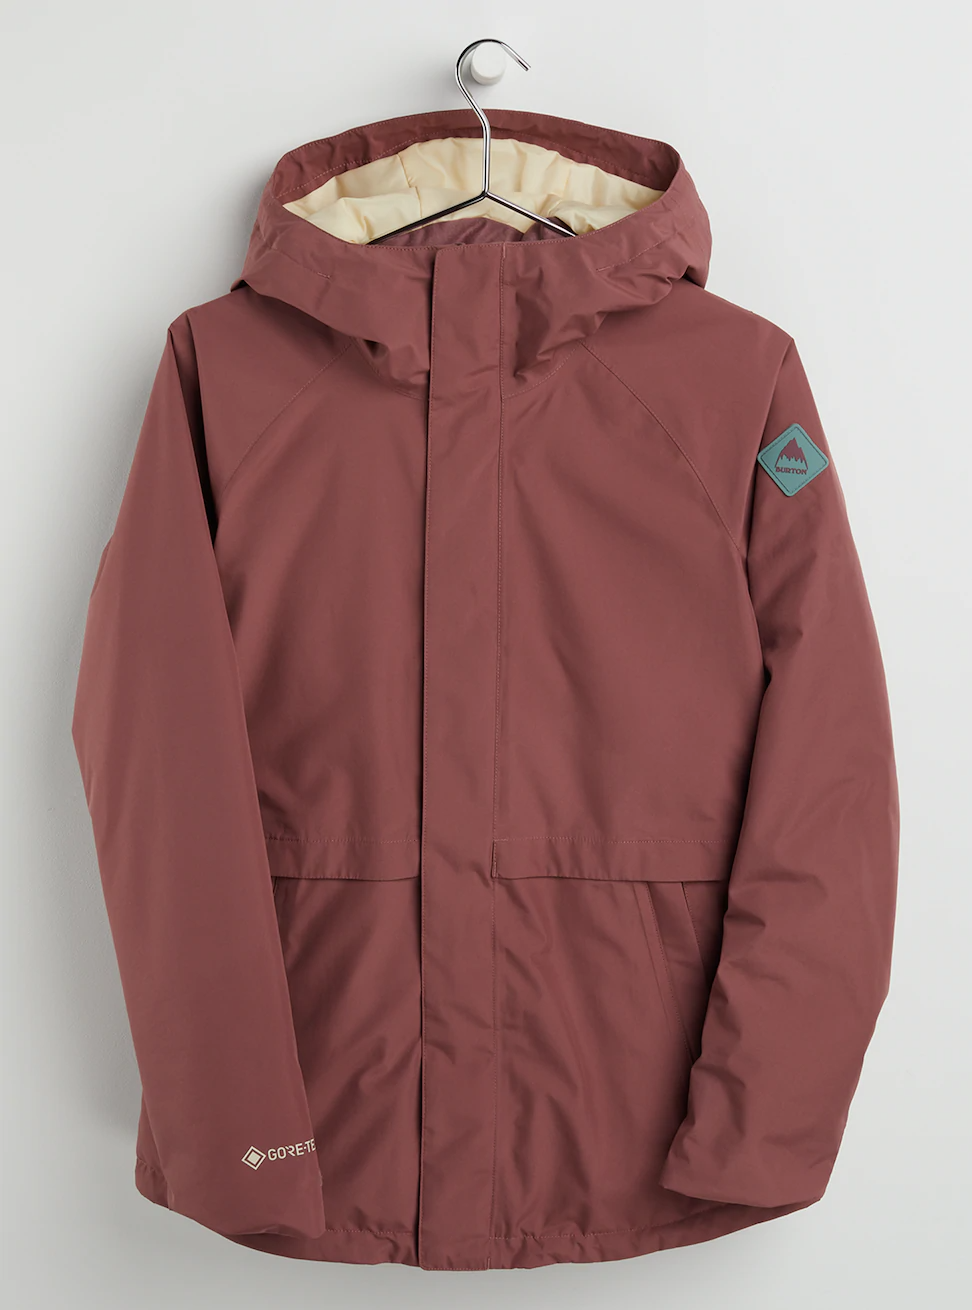 Shop The Women S Burton Gore Tex Kaylo Shell Jacket Along With More Winter Jackets And Outerwear From Winter Burton Women Jacket Ski Jacket Women Skiing Outfit [ 1310 x 972 Pixel ]